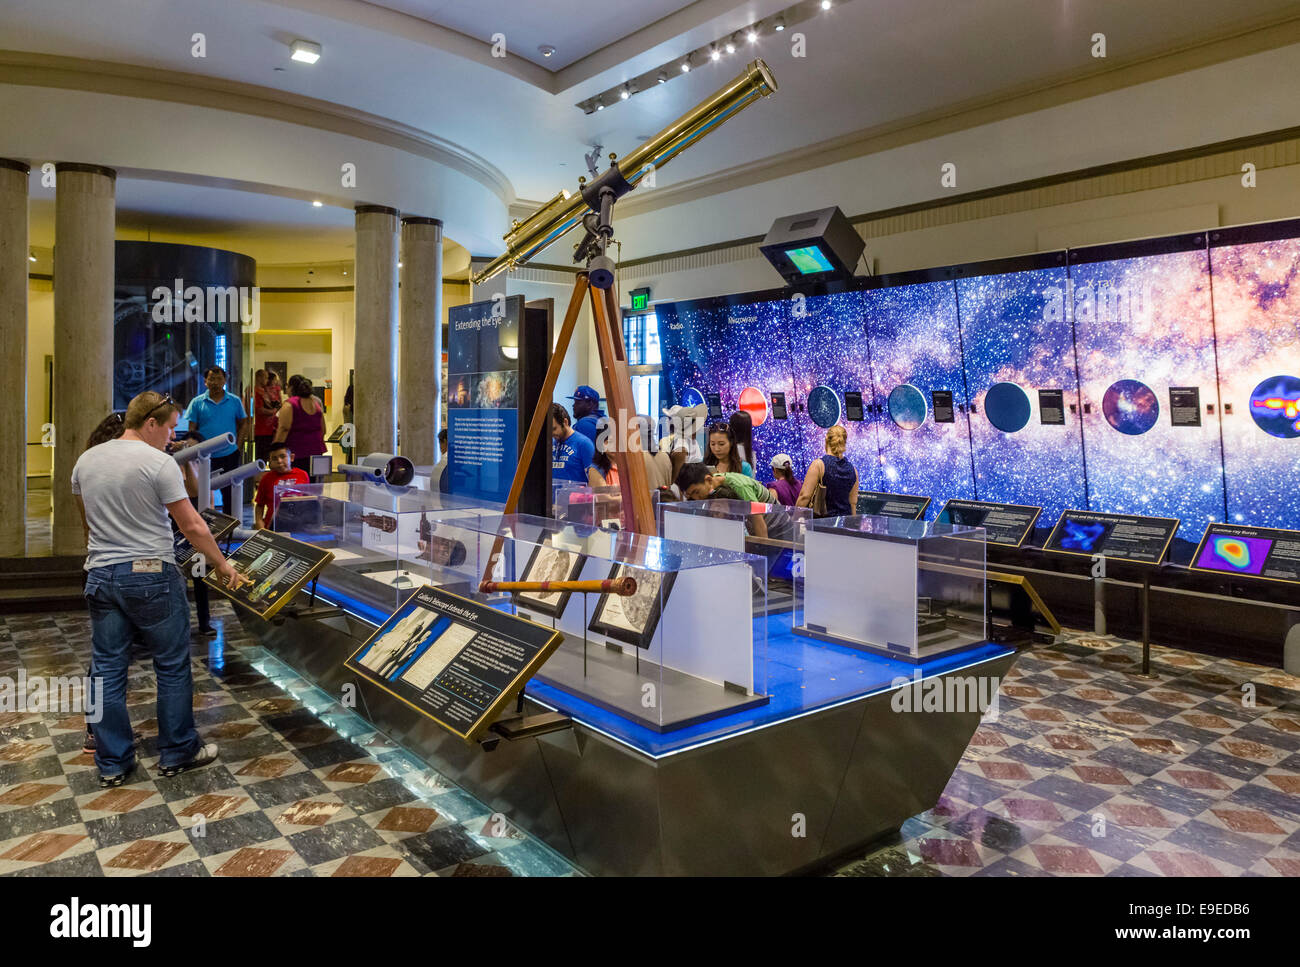 Exhibits inside the Griffith Observatory, Griffith Park, Los Angeles, California, USA - Stock Image